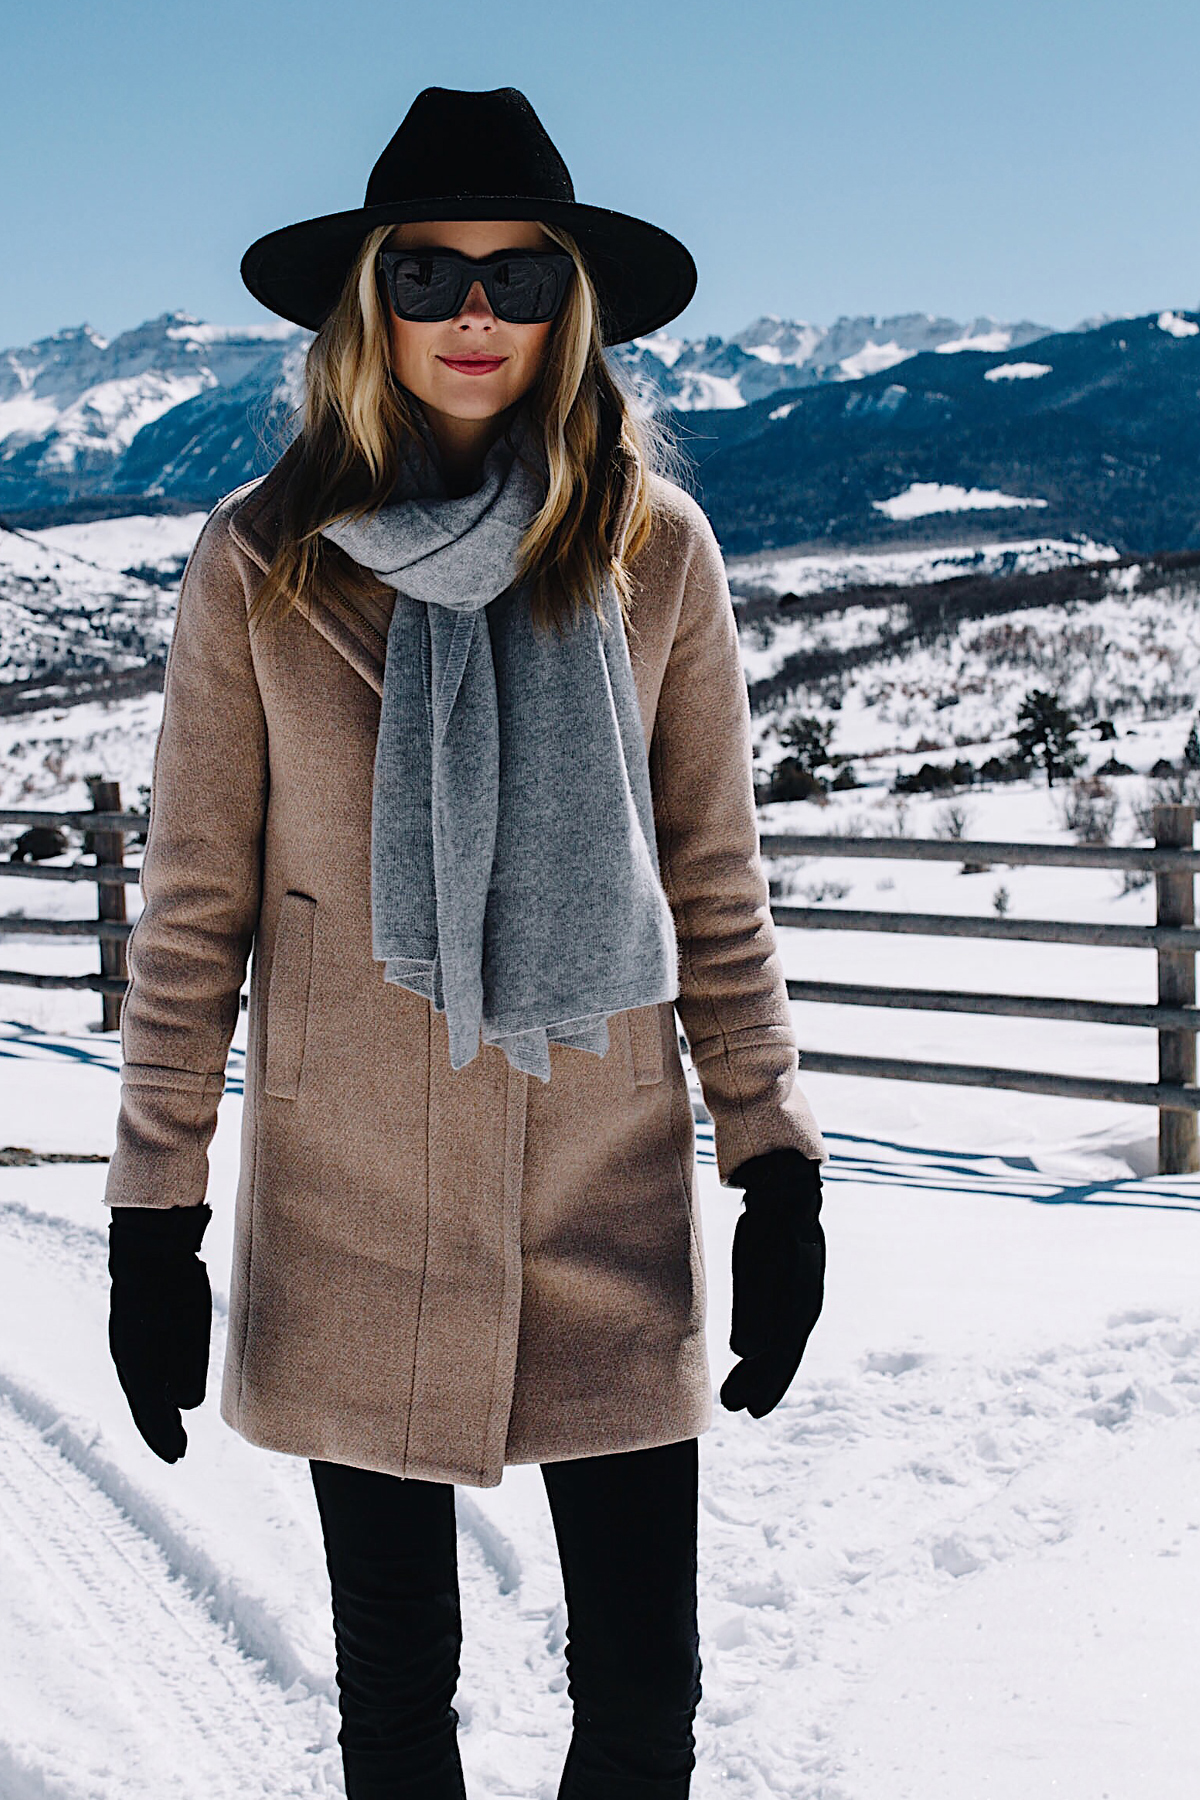 Telluride CO Blonde Woman Wearing Grey Scarf Camel Coat Black Wool Hat Black Gloves Fashion Jackson Dallas Blogger Fashion Blogger